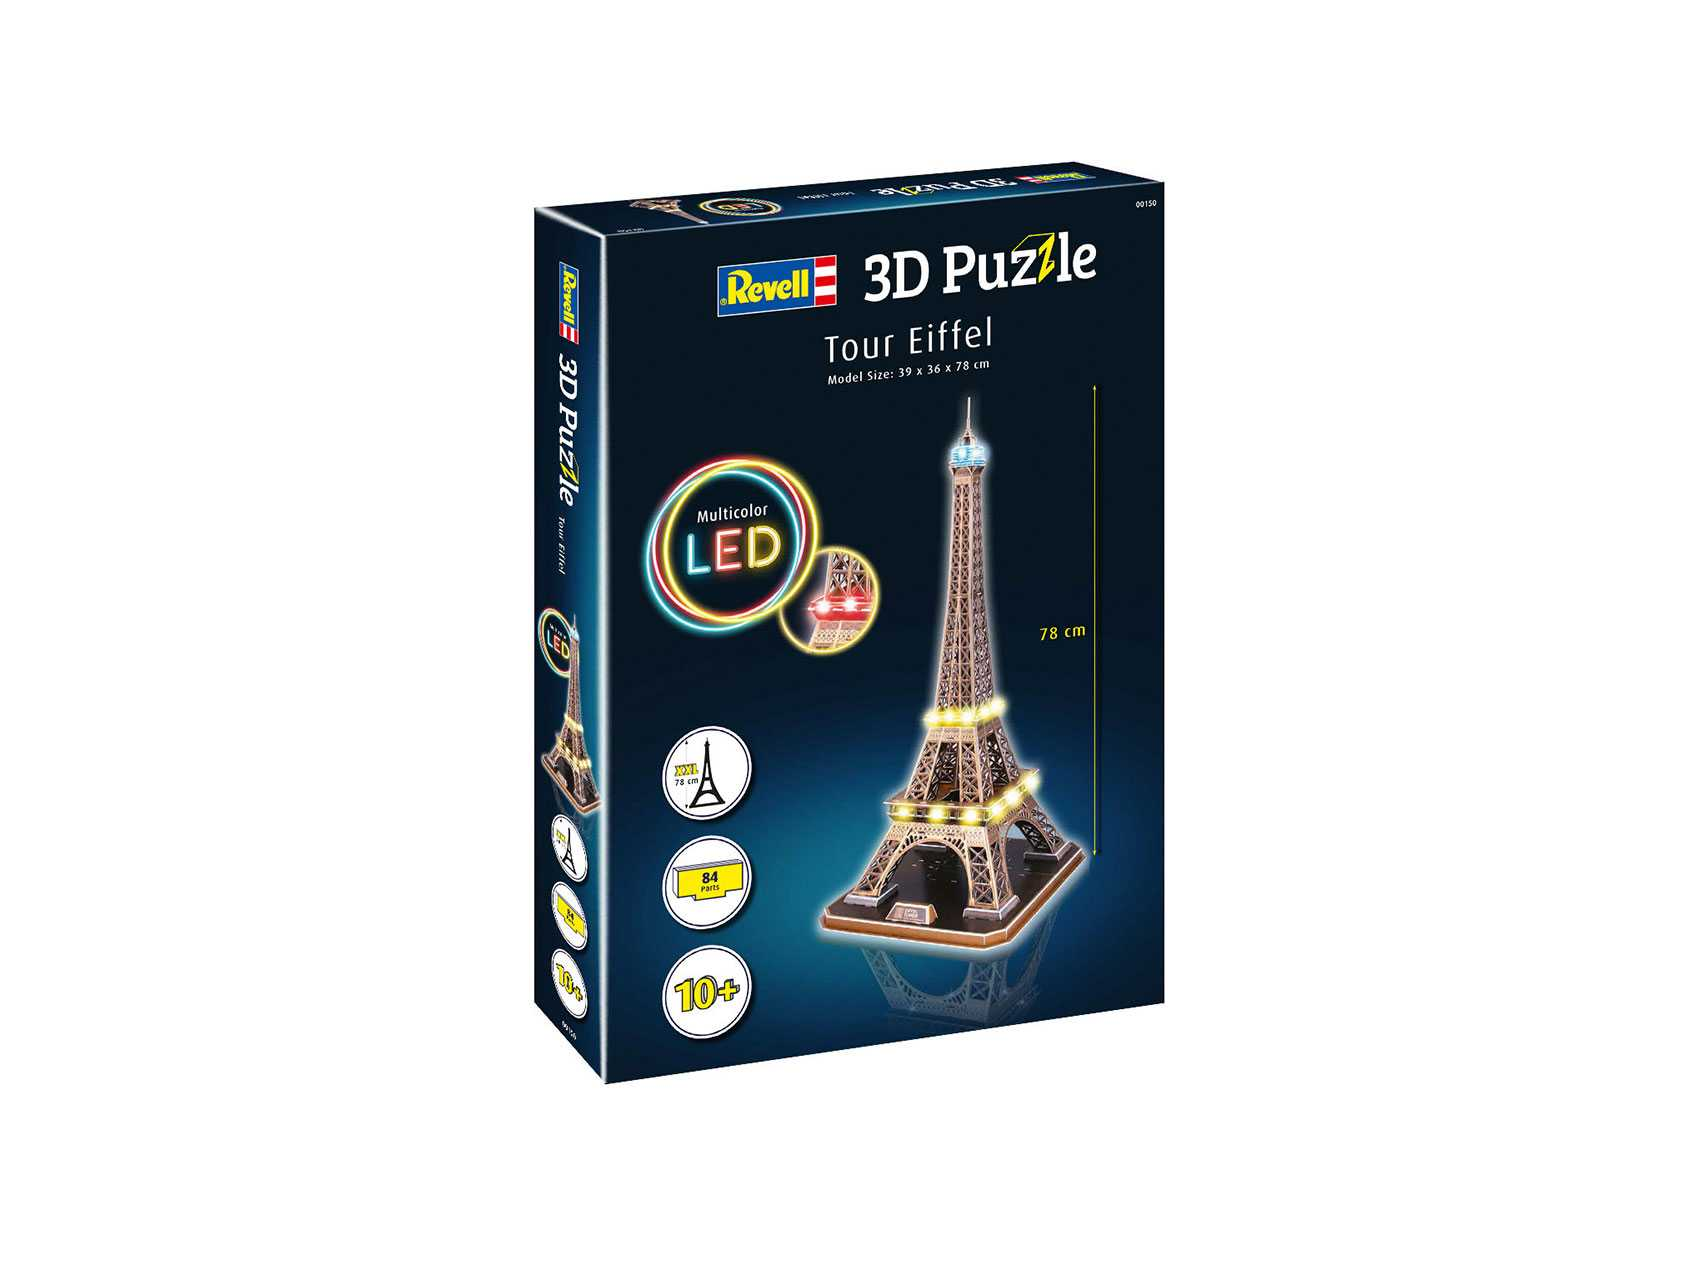 3D Puzzle Revell – Tour Eiffel (LED Edition)